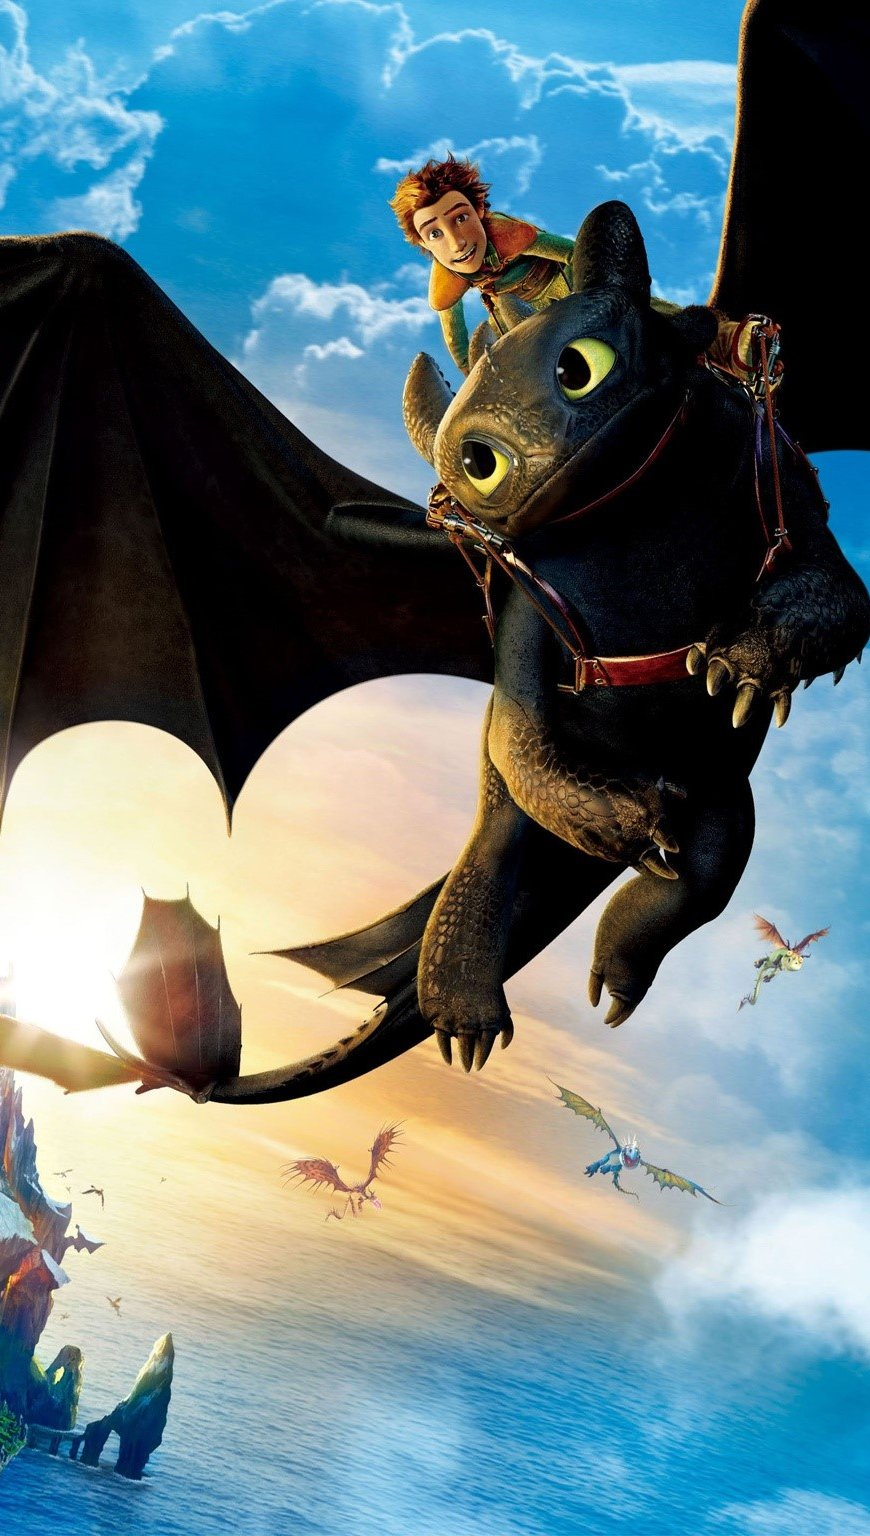 Wallpaper How to Train Your Dragon Vertical